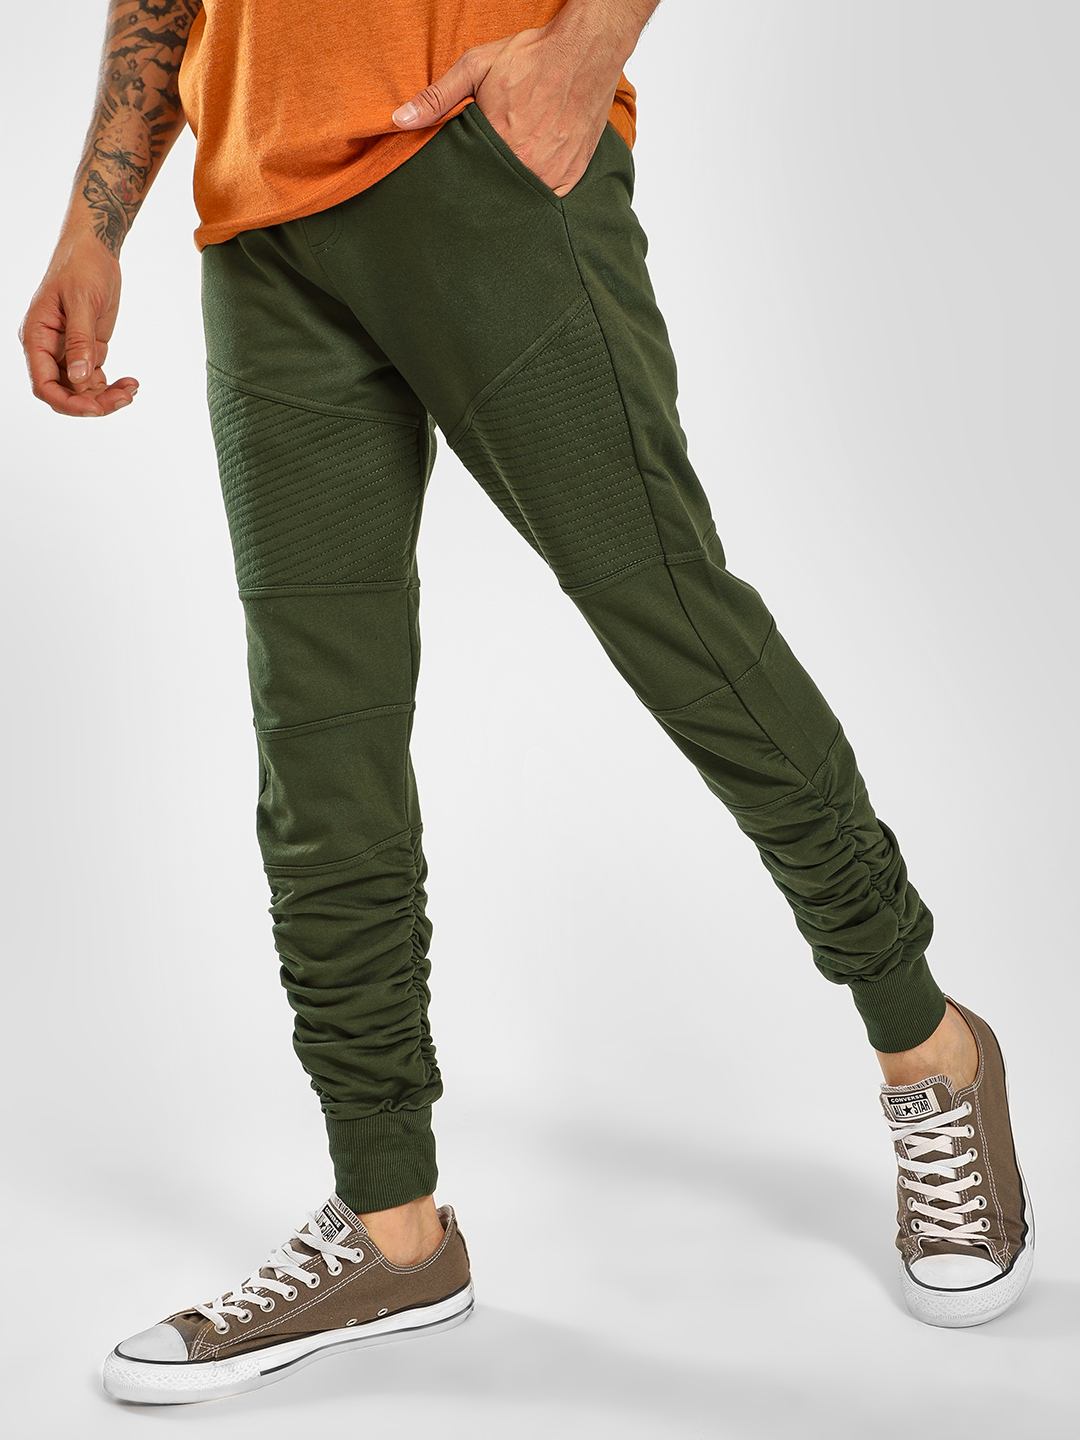 SKULT By Shahid Kapoor Green Biker Panel Ruched Hem Joggers 1